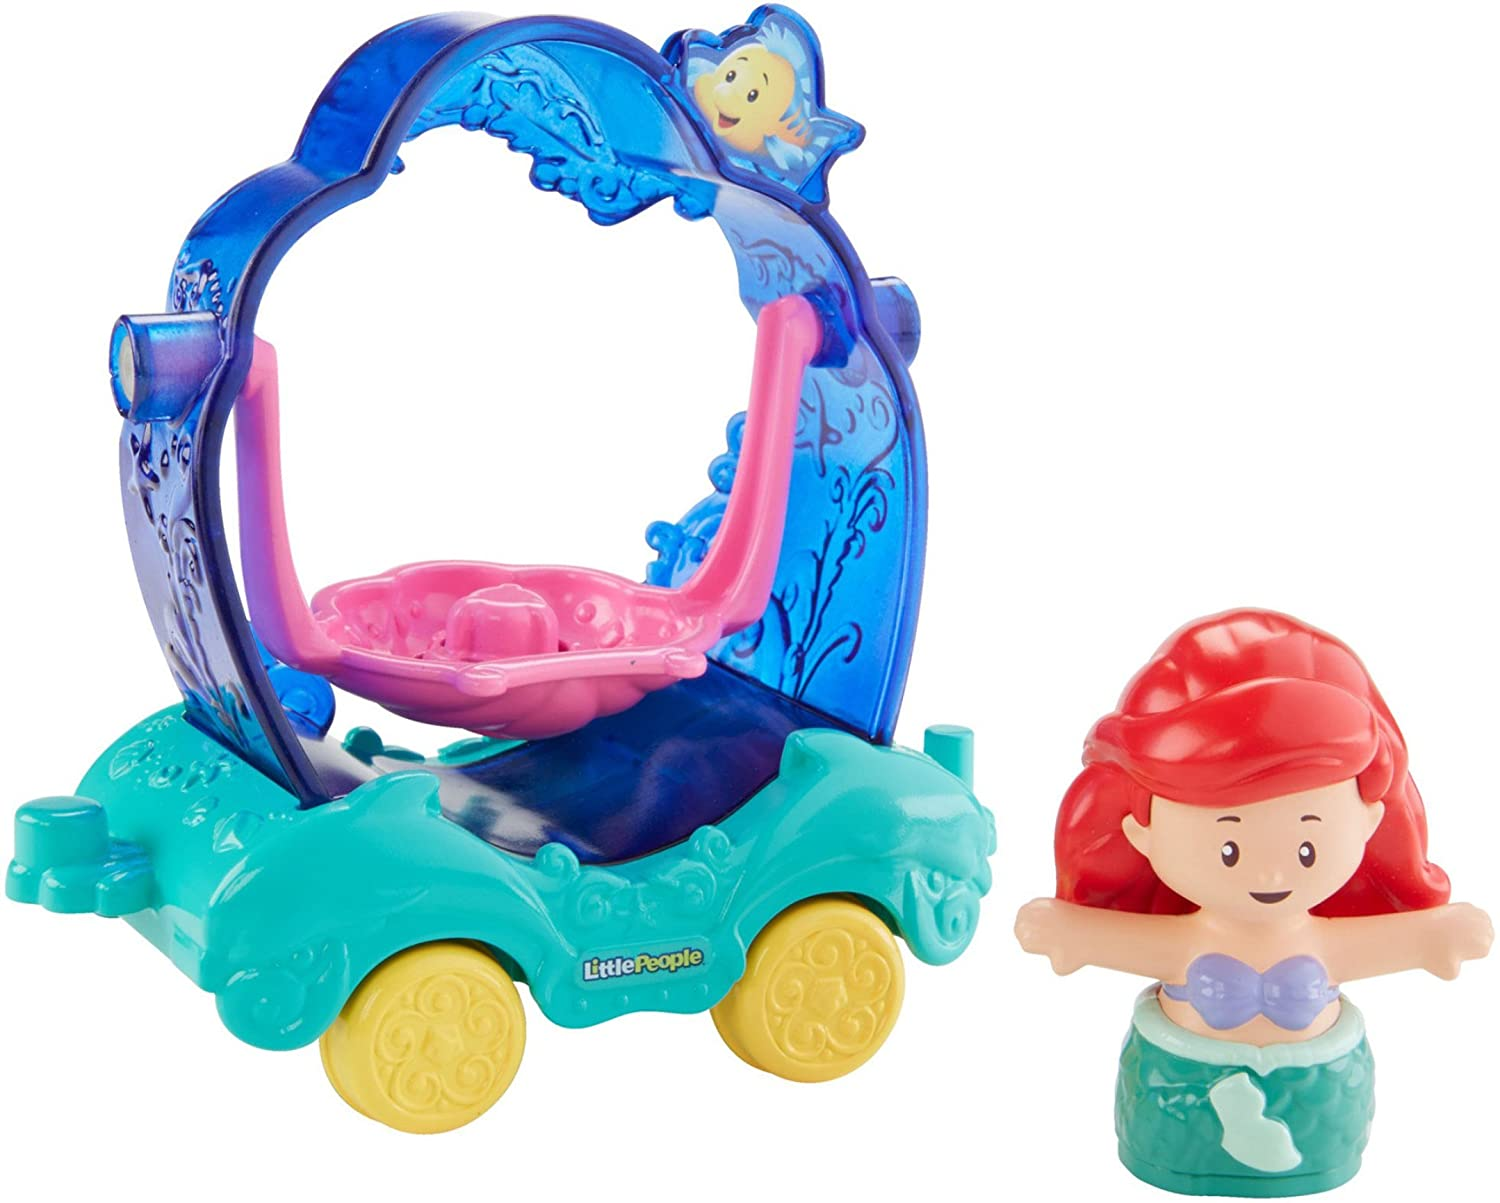 Amazon.com: Fisher-Price Little People Disney Princess, Parade Ariel & Flounders Float: Toys & Games